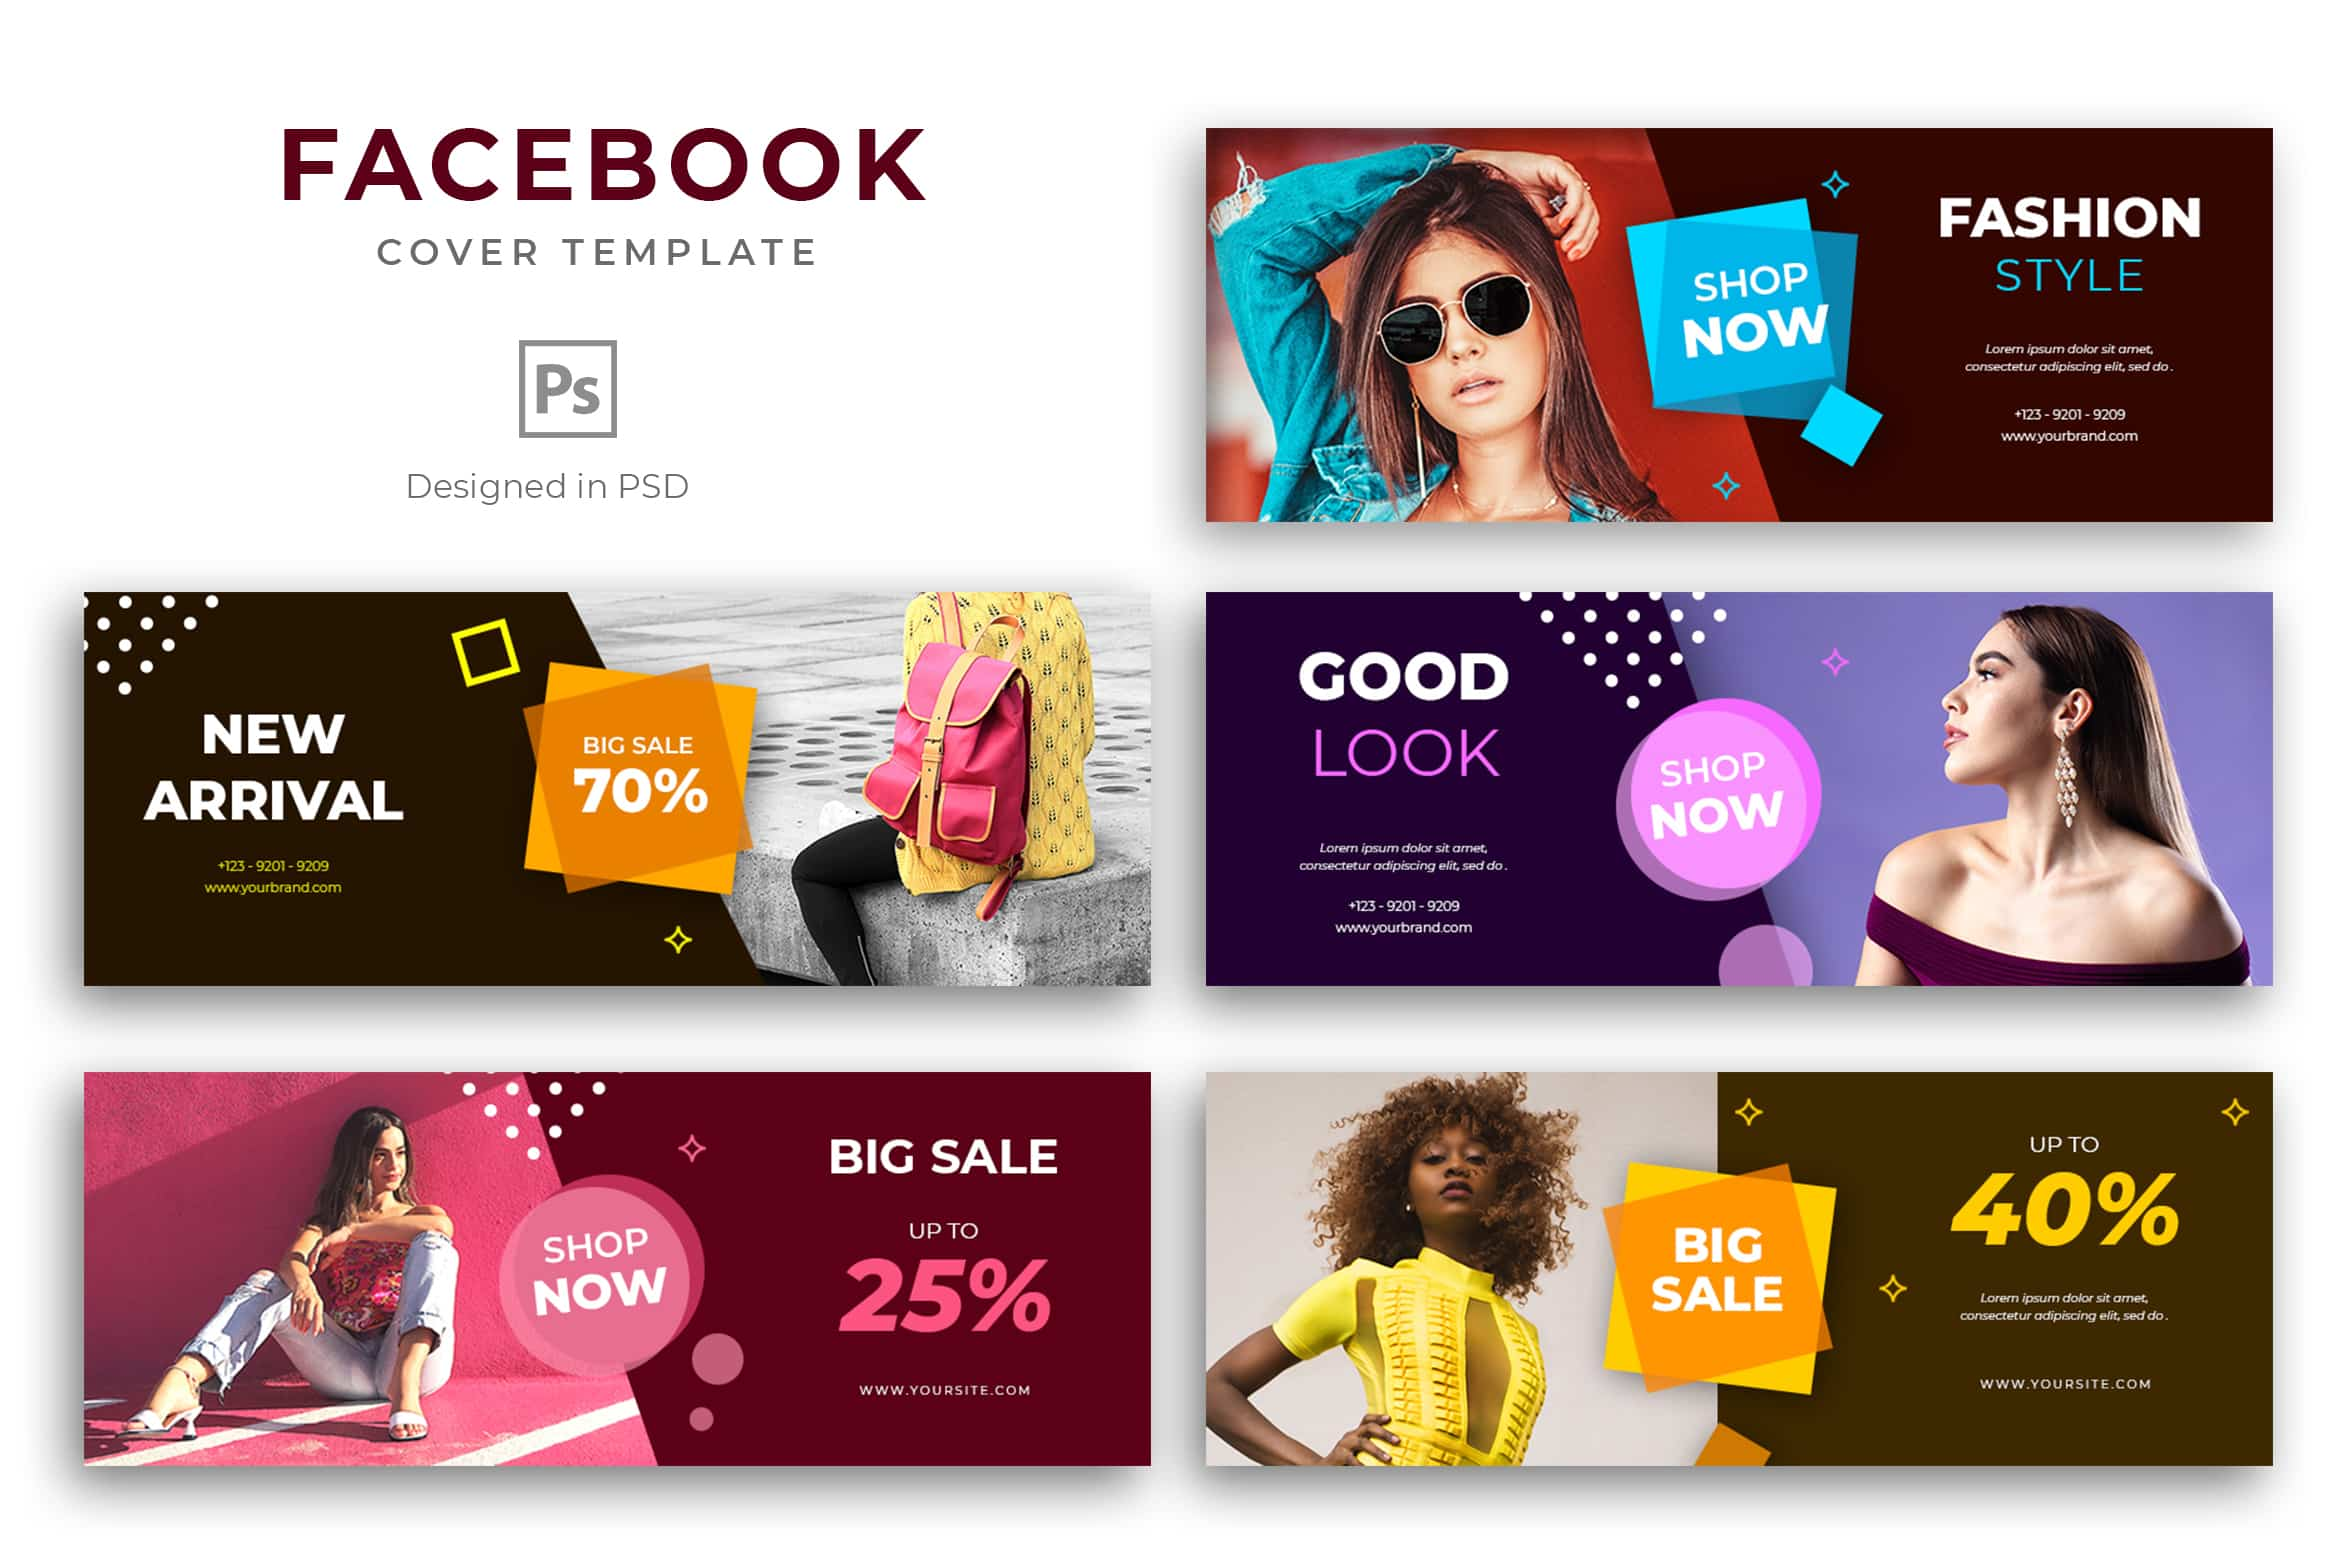 Facebook Cover - Modern Fashion Shop